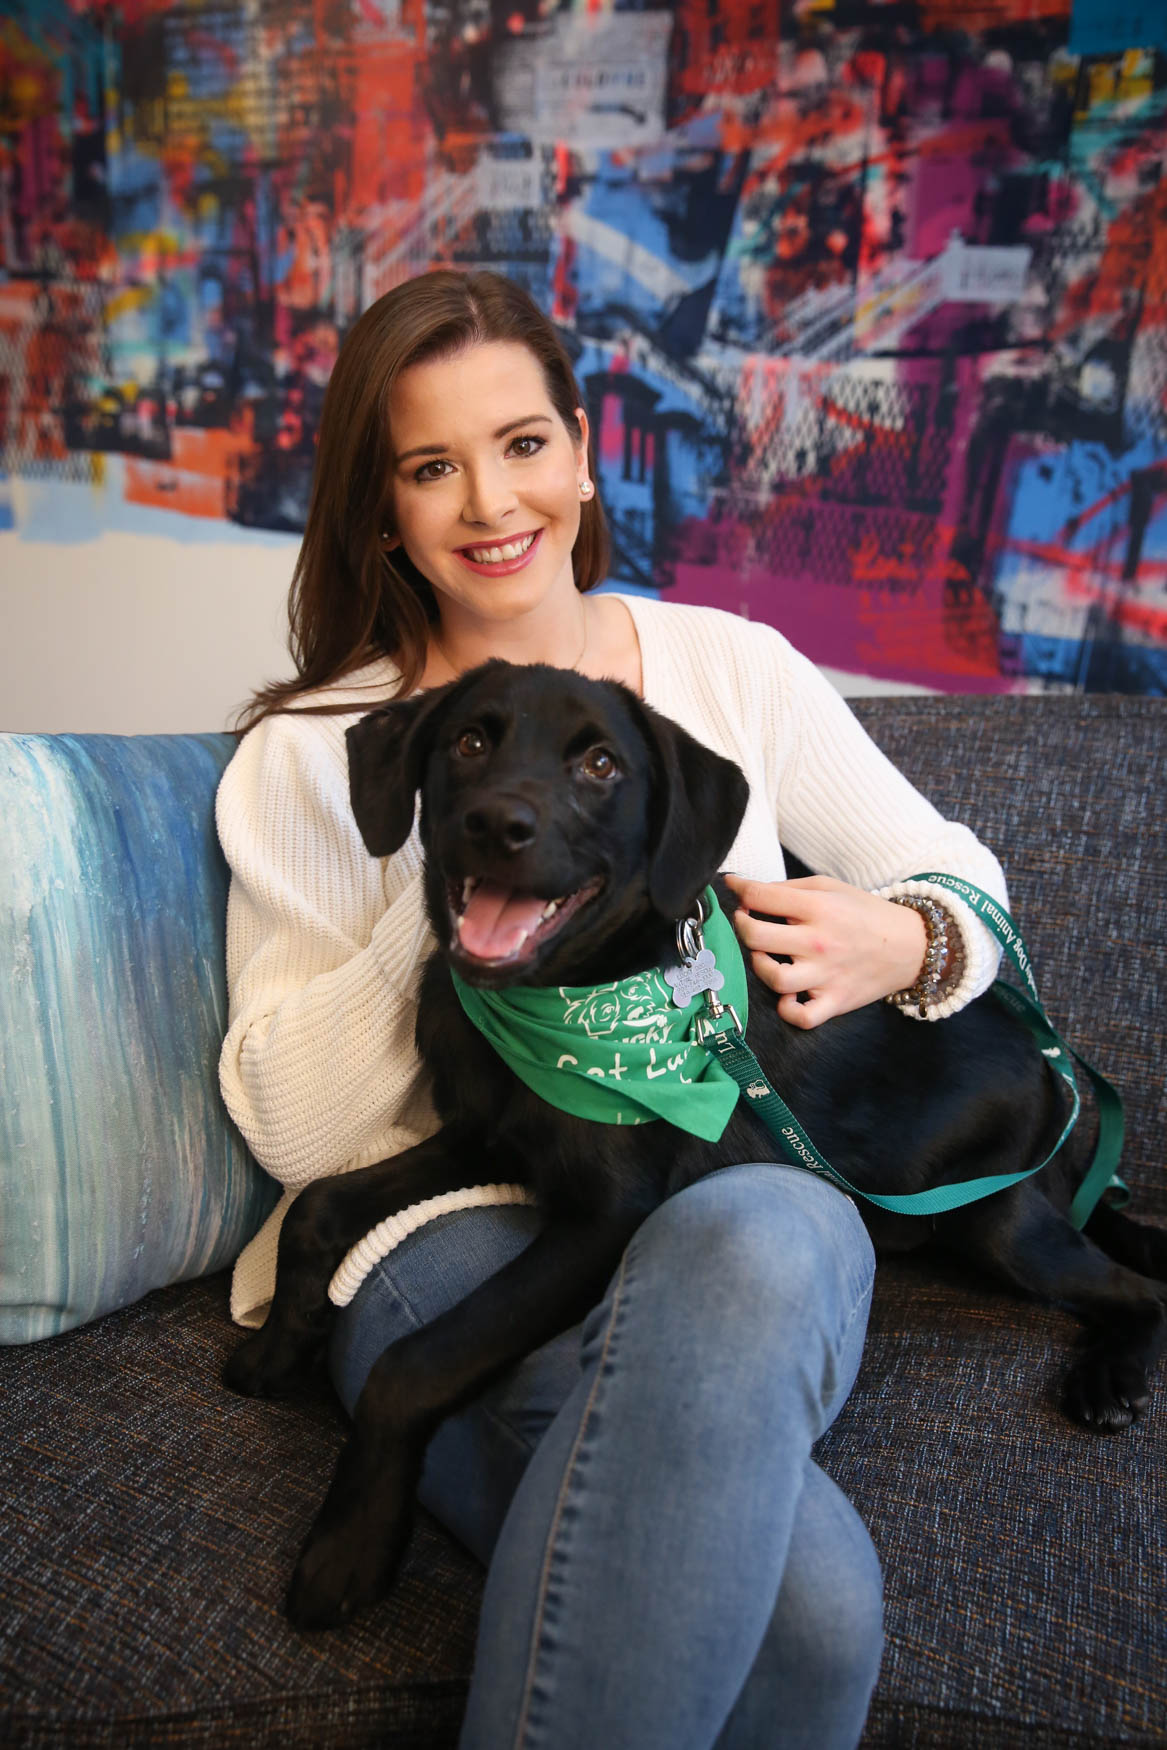 Meet Waggs and Justine, a 5-month-old Lab mix and a 26-year-old human respectively. Photo location: Moxy Washington, D.C. Downtown (Image: Amanda Andrade-Rhoades/ DC Refined)